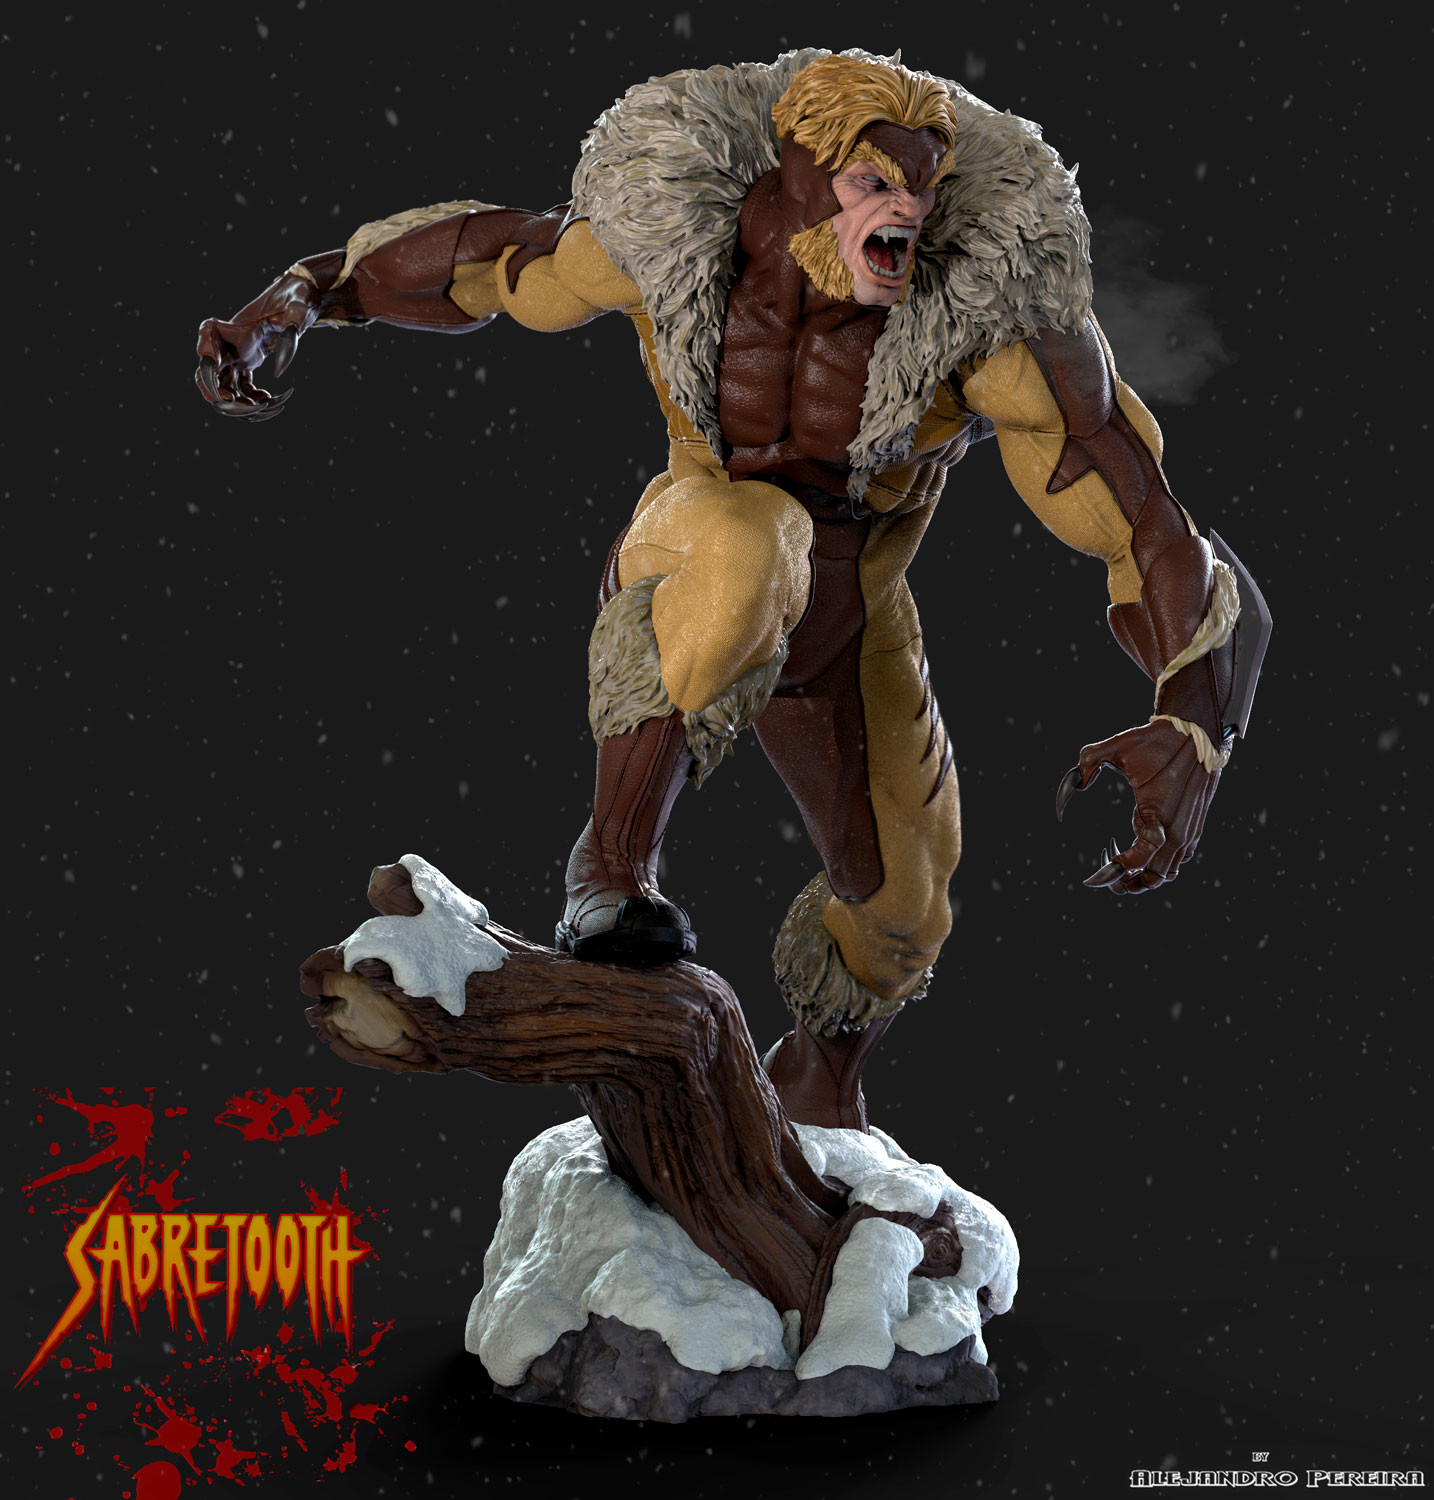 Alejandro pereira sabretooth color 01